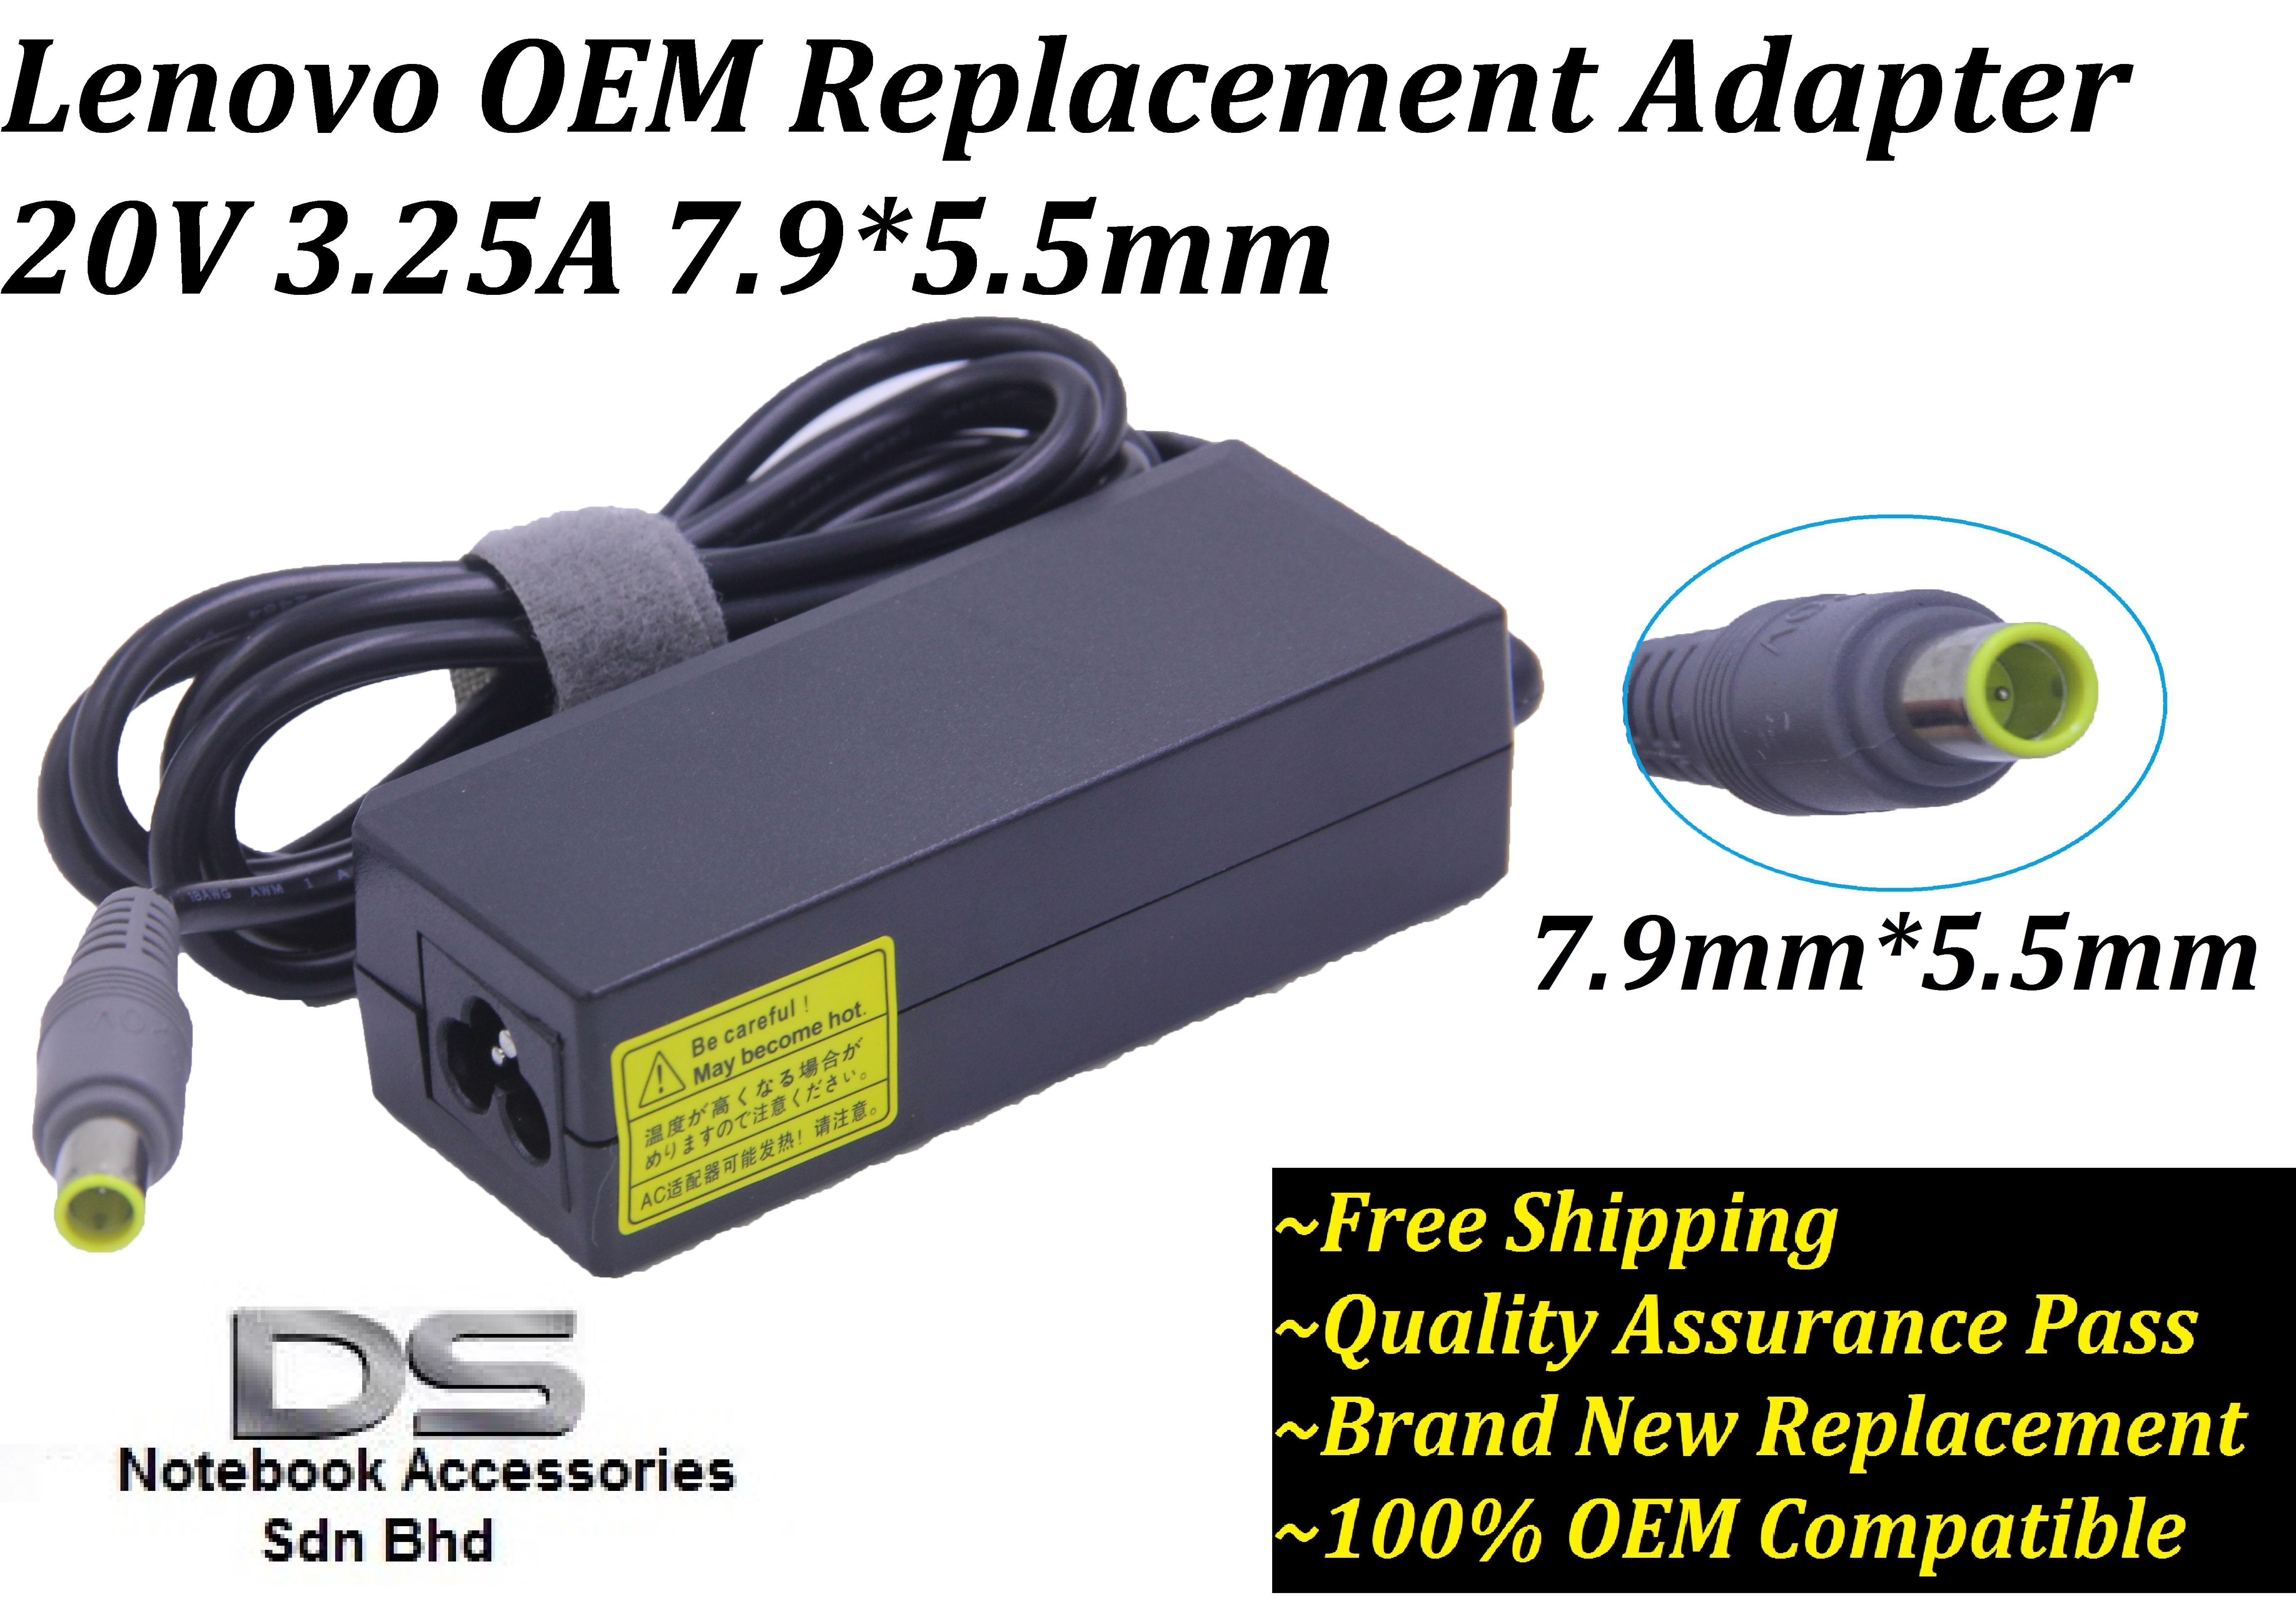 Sell Good Hpa1820 20v Cheapest Best Quality My Store Adaptor Charger Lenovo G40 30 45 70 G50 Z40 75 Z50 225a Myr 40